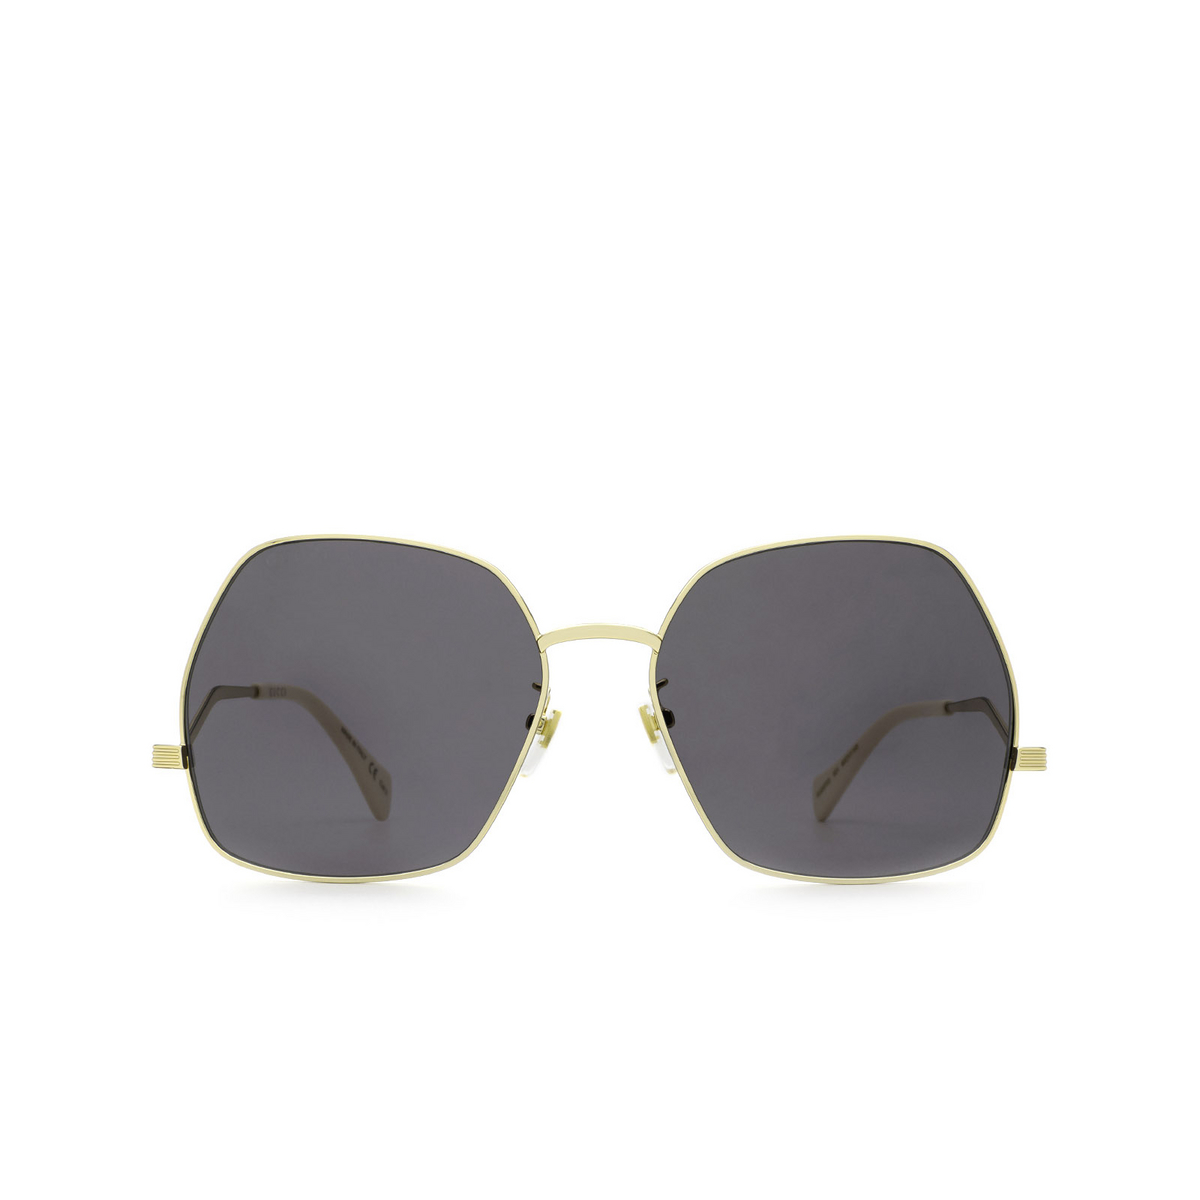 Gucci® Irregular Sunglasses: GG0972S color Gold 001 - front view.